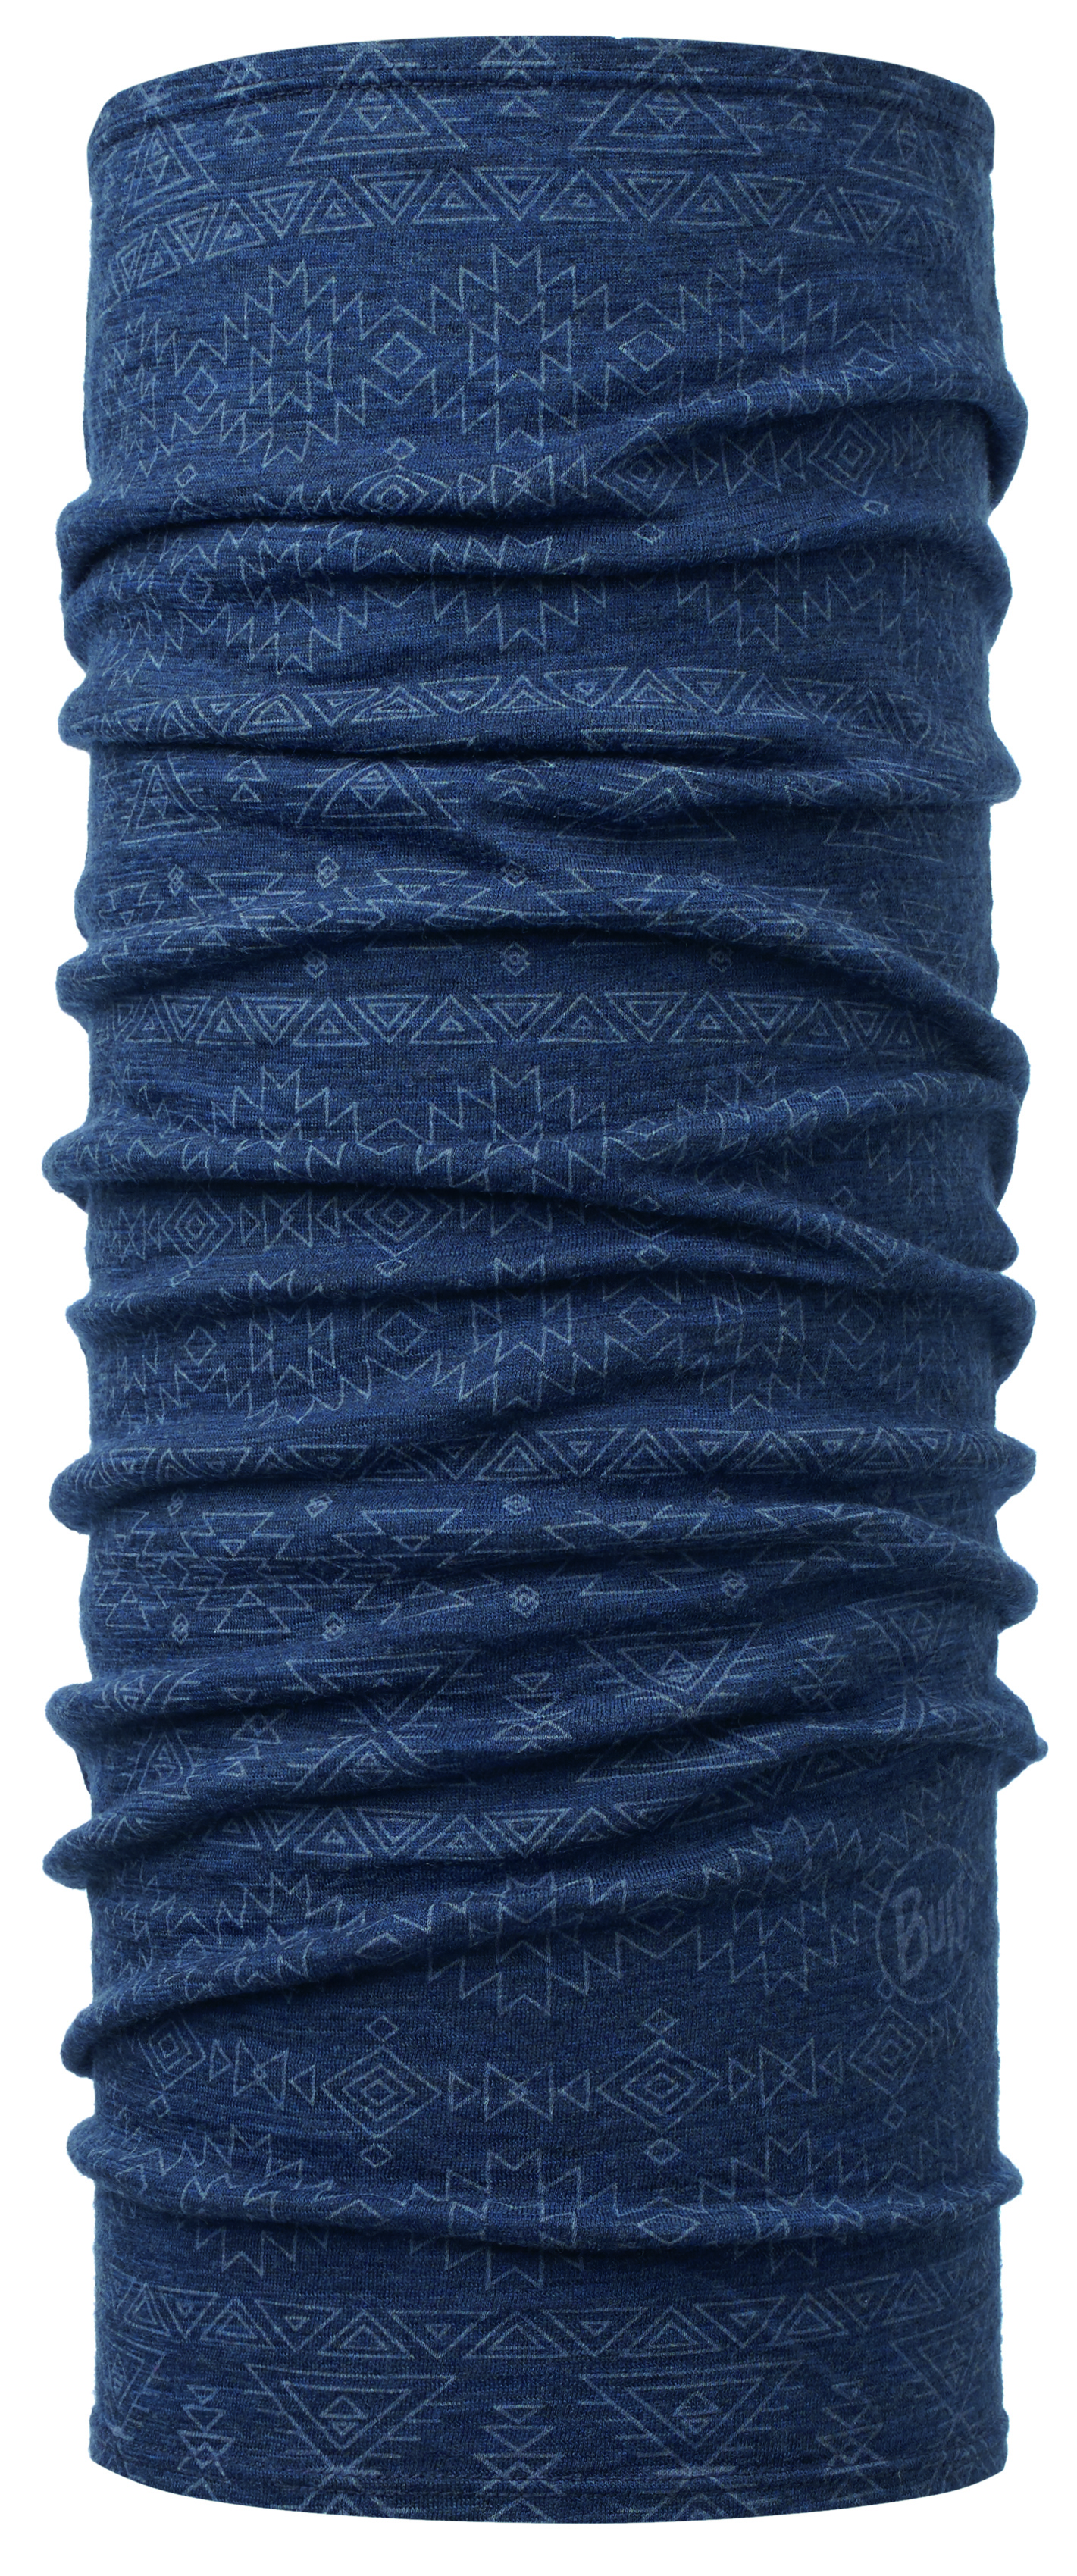 Бандана Buff Lightweight Merino Wool Edgy Denim